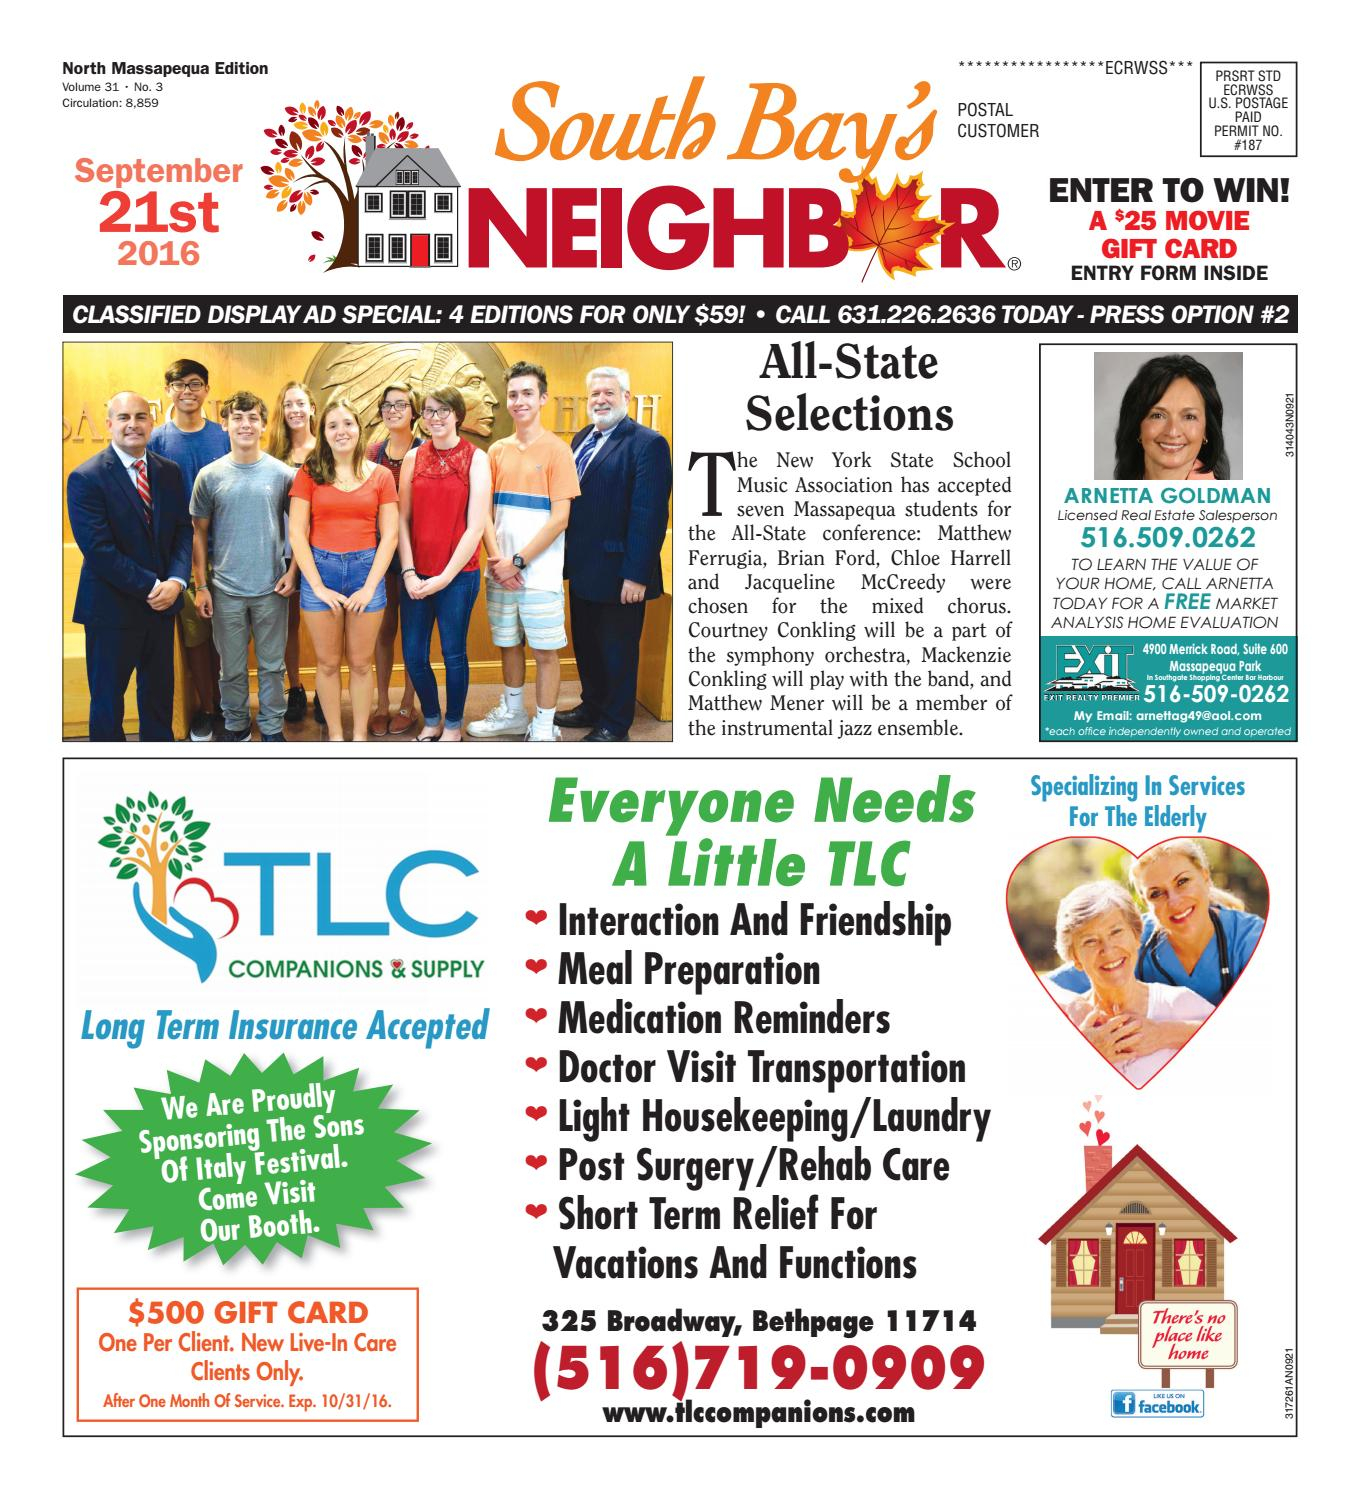 18 2017 north massapequa by south bay s neighbor 18 2017 north massapequa by south bay s neighbor newspapers issuu